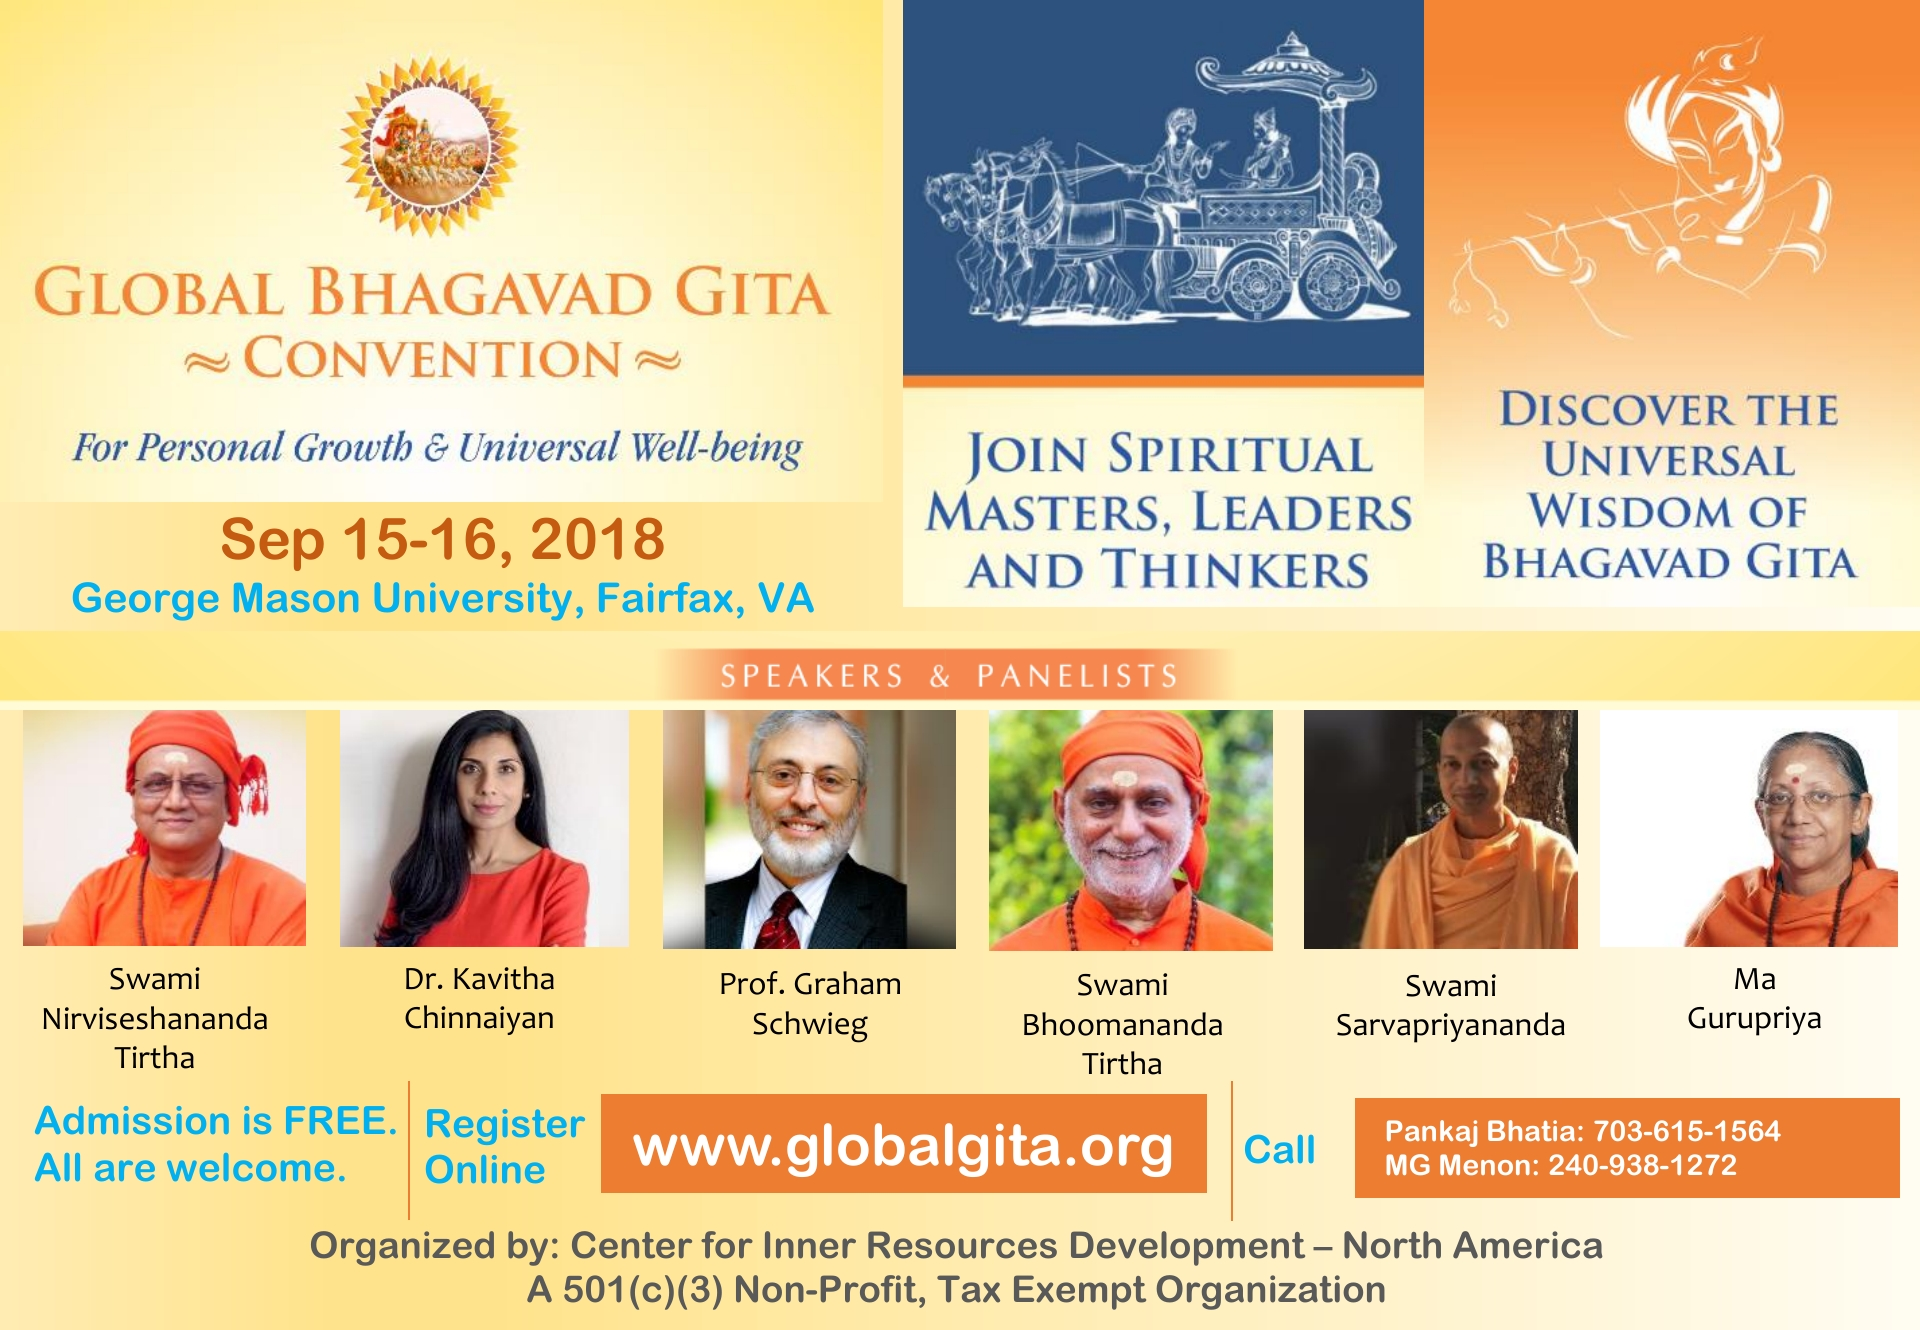 Global Bhagavad Gita Convention